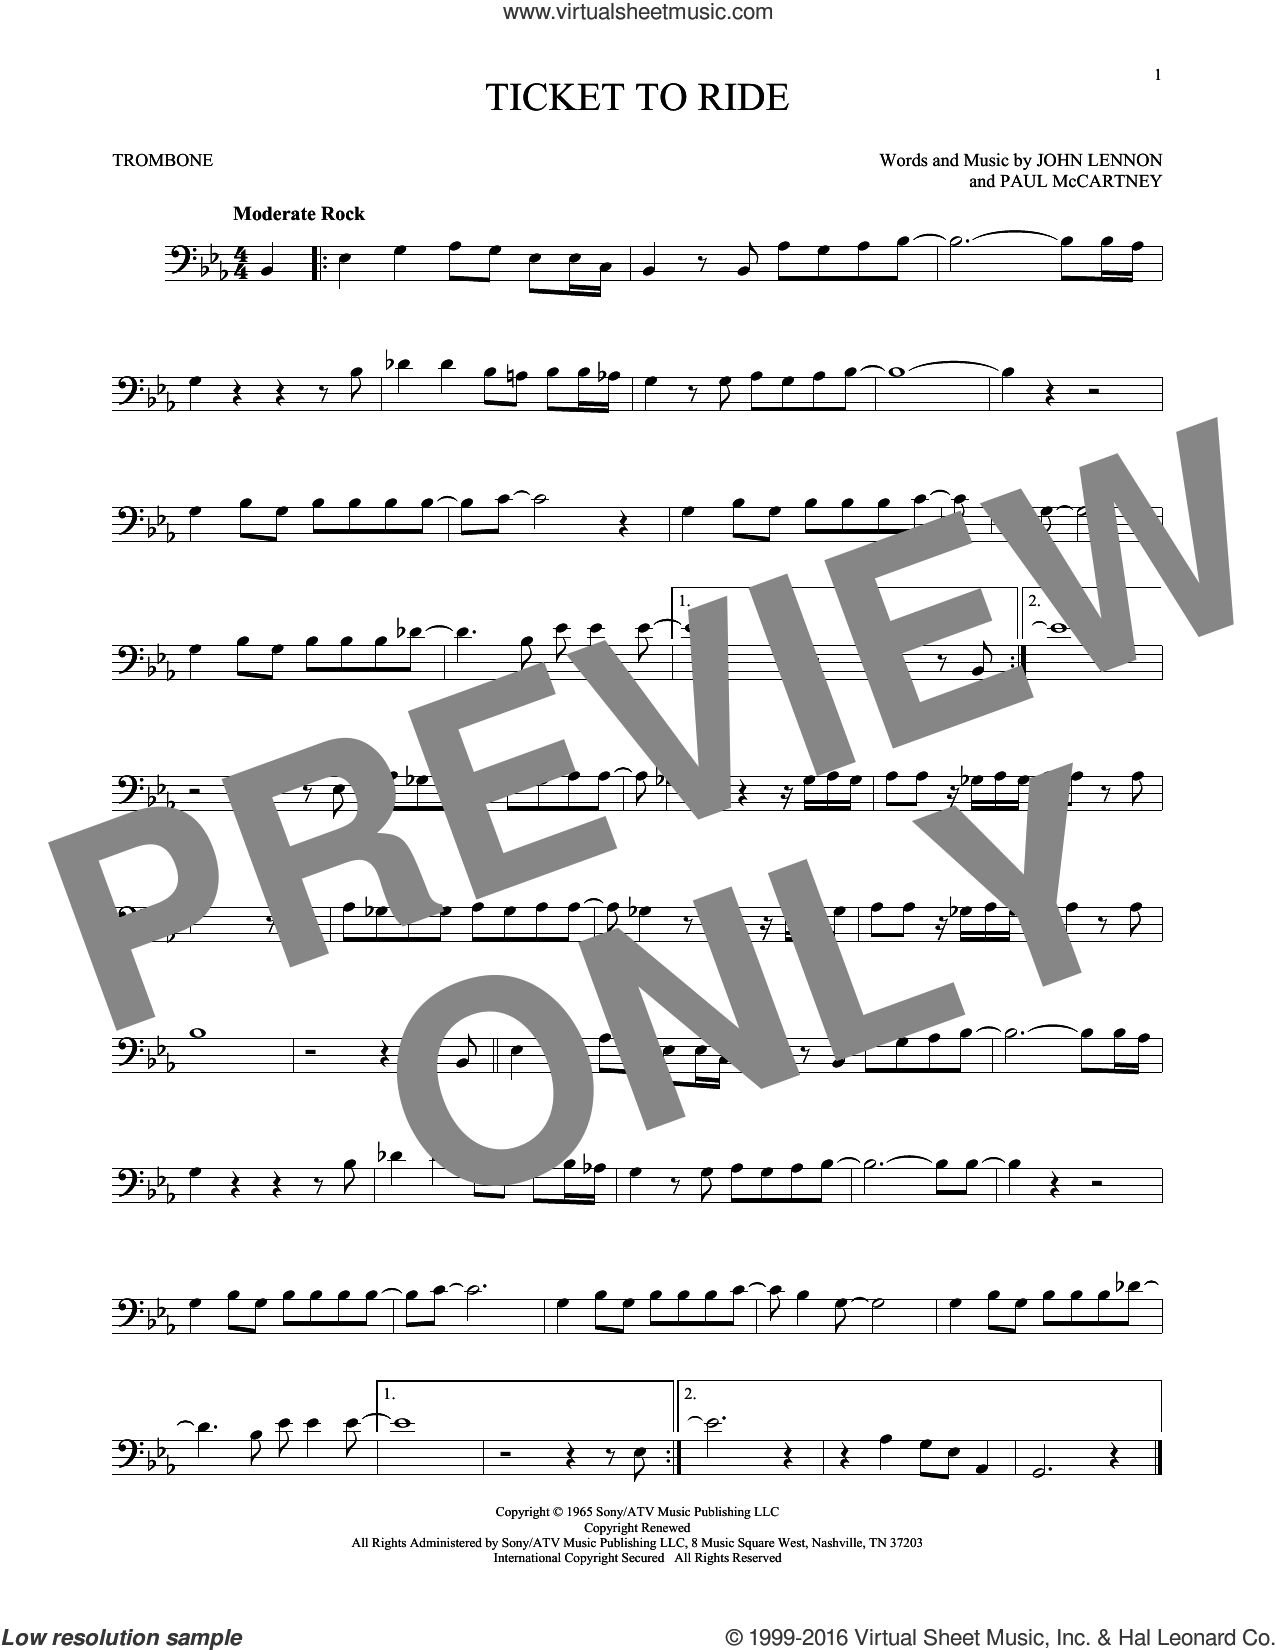 Ticket To Ride sheet music for trombone solo by The Beatles, John Lennon and Paul McCartney, intermediate trombone. Score Image Preview.